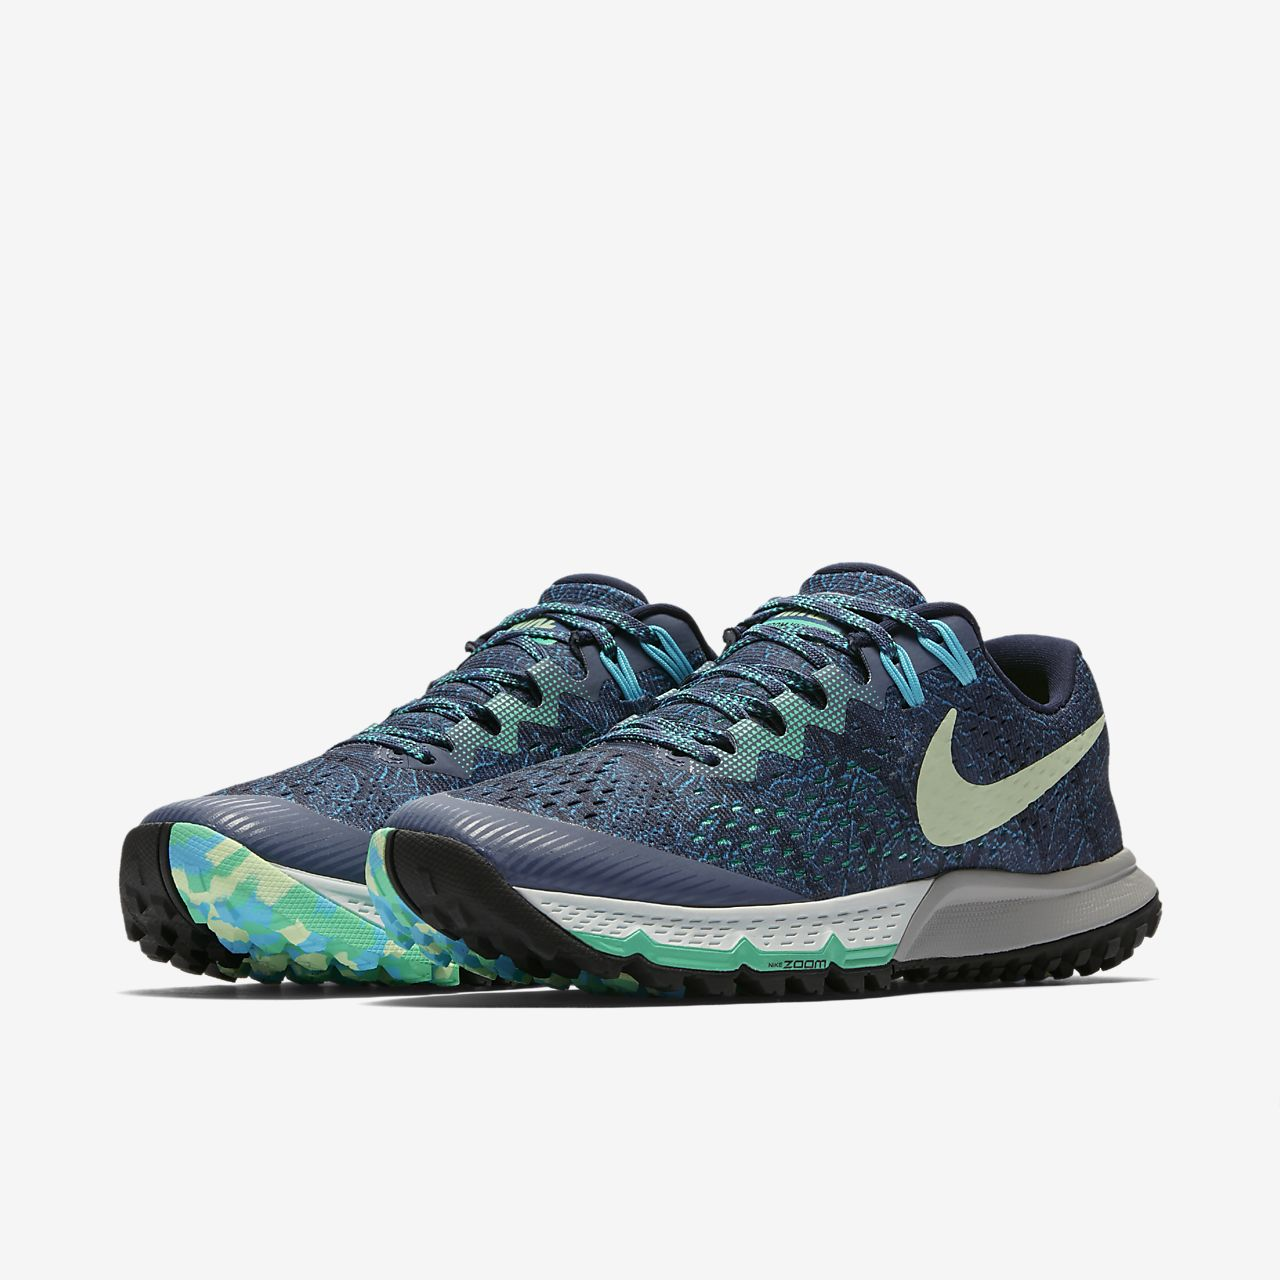 new concept 023d9 62534 ... Nike Air Zoom Terra Kiger 4 Women s Running Shoe